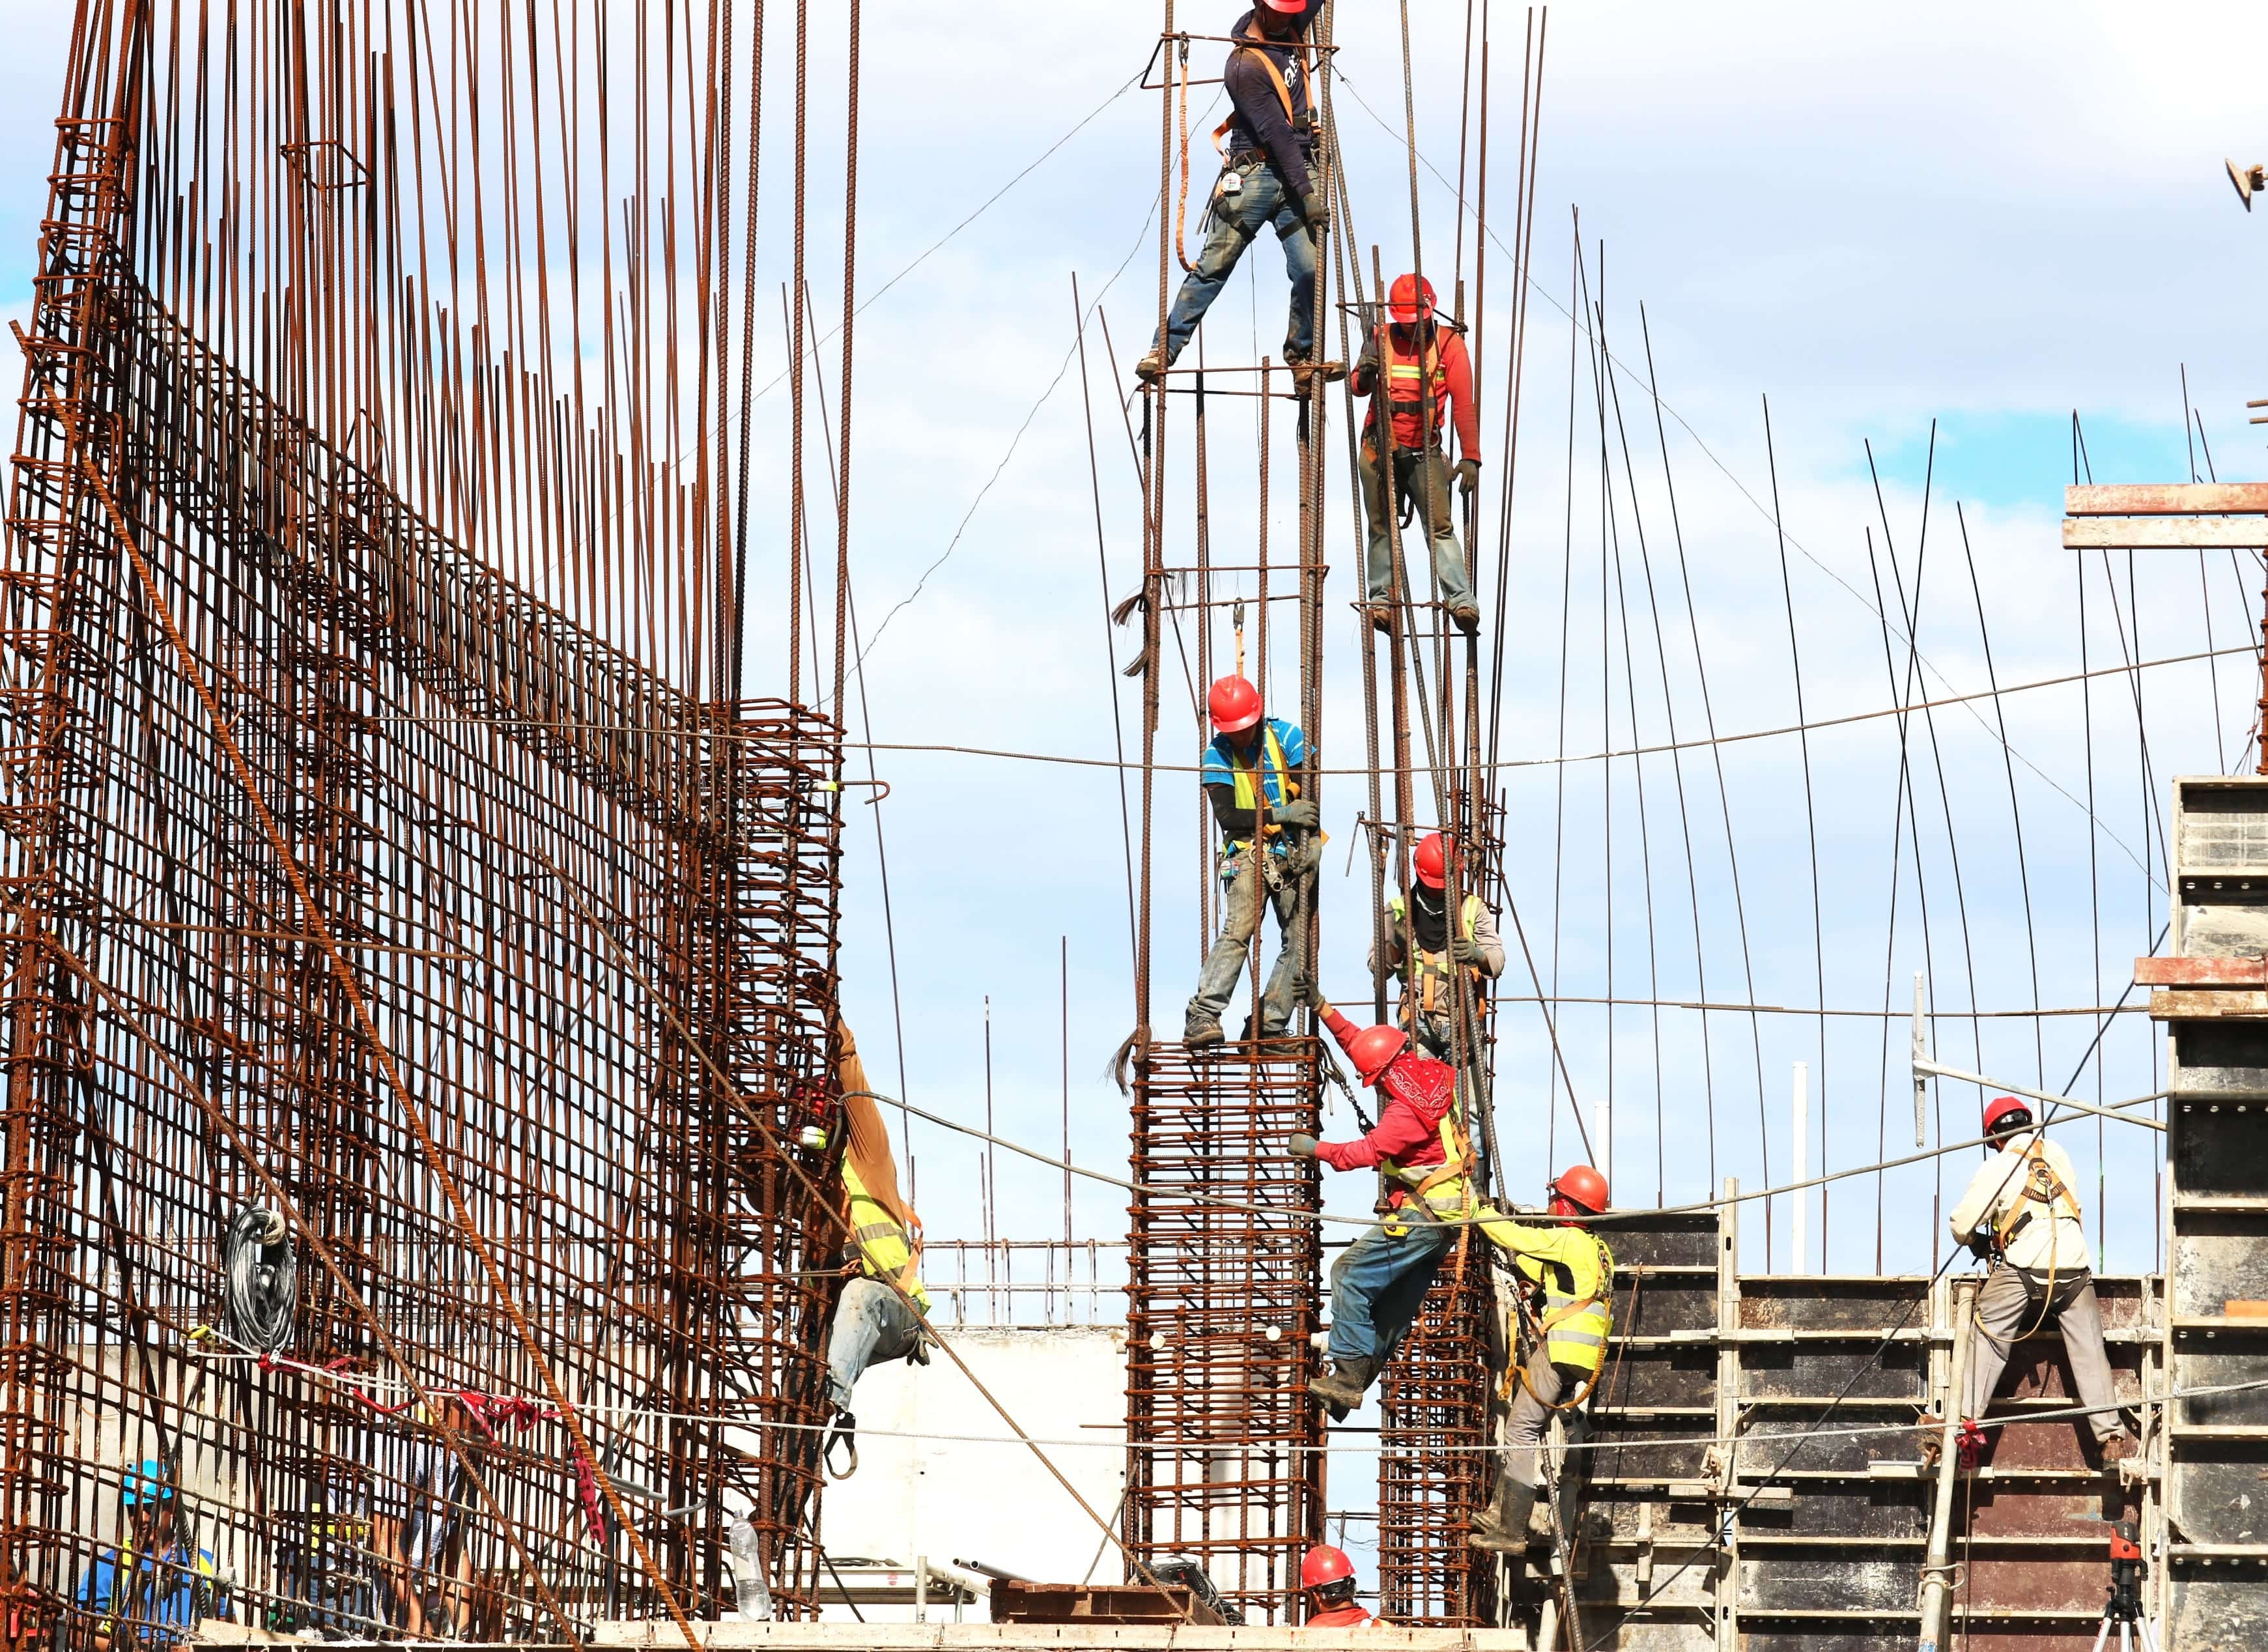 Construction workers working on a buliding; image by Josue Isai Ramos Figueroa, via Unsplash.com.